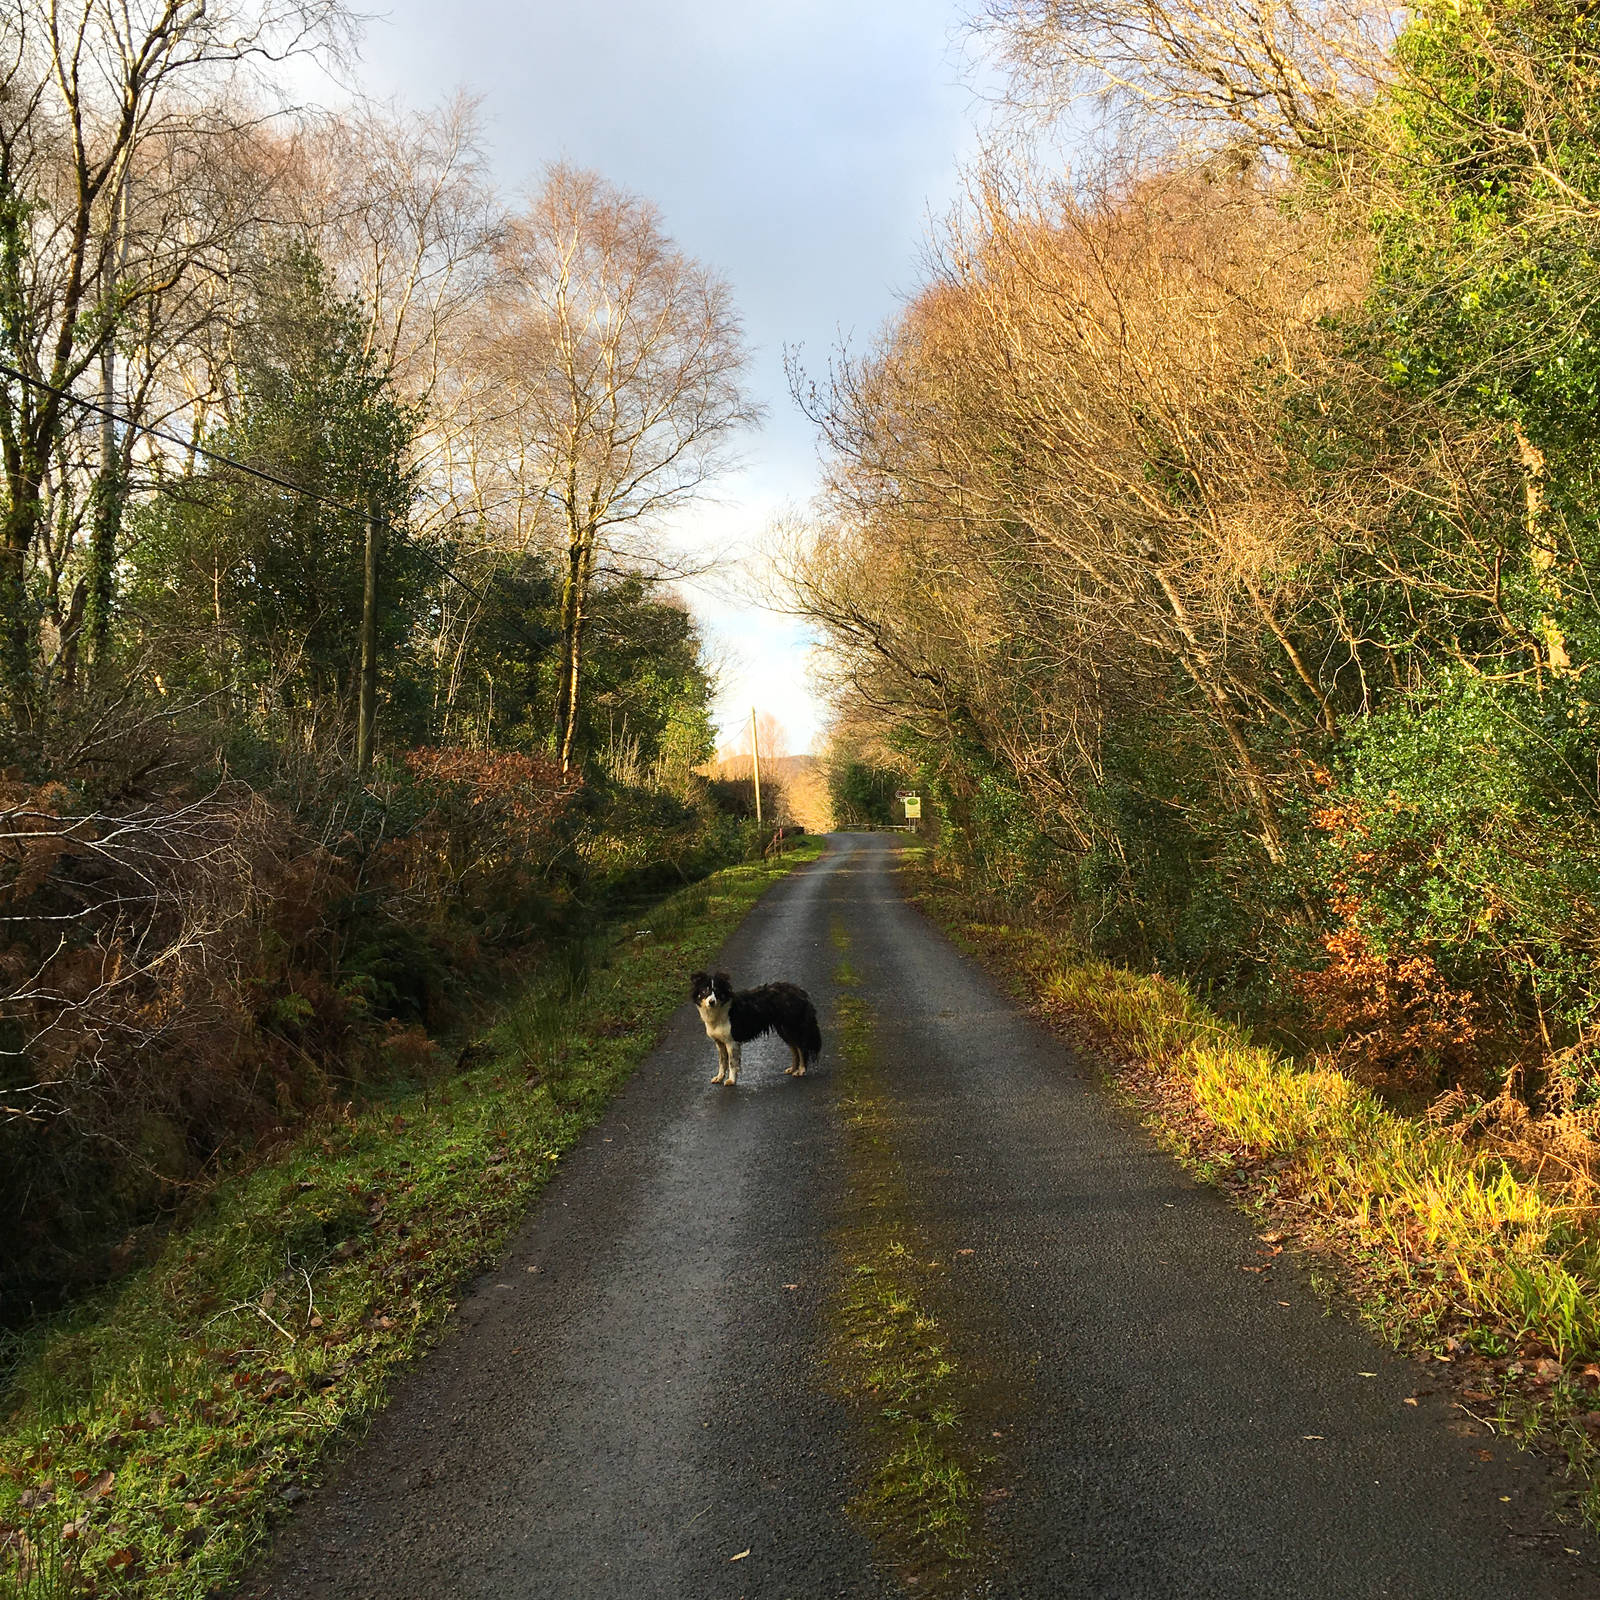 Dog on the road near Oughterard